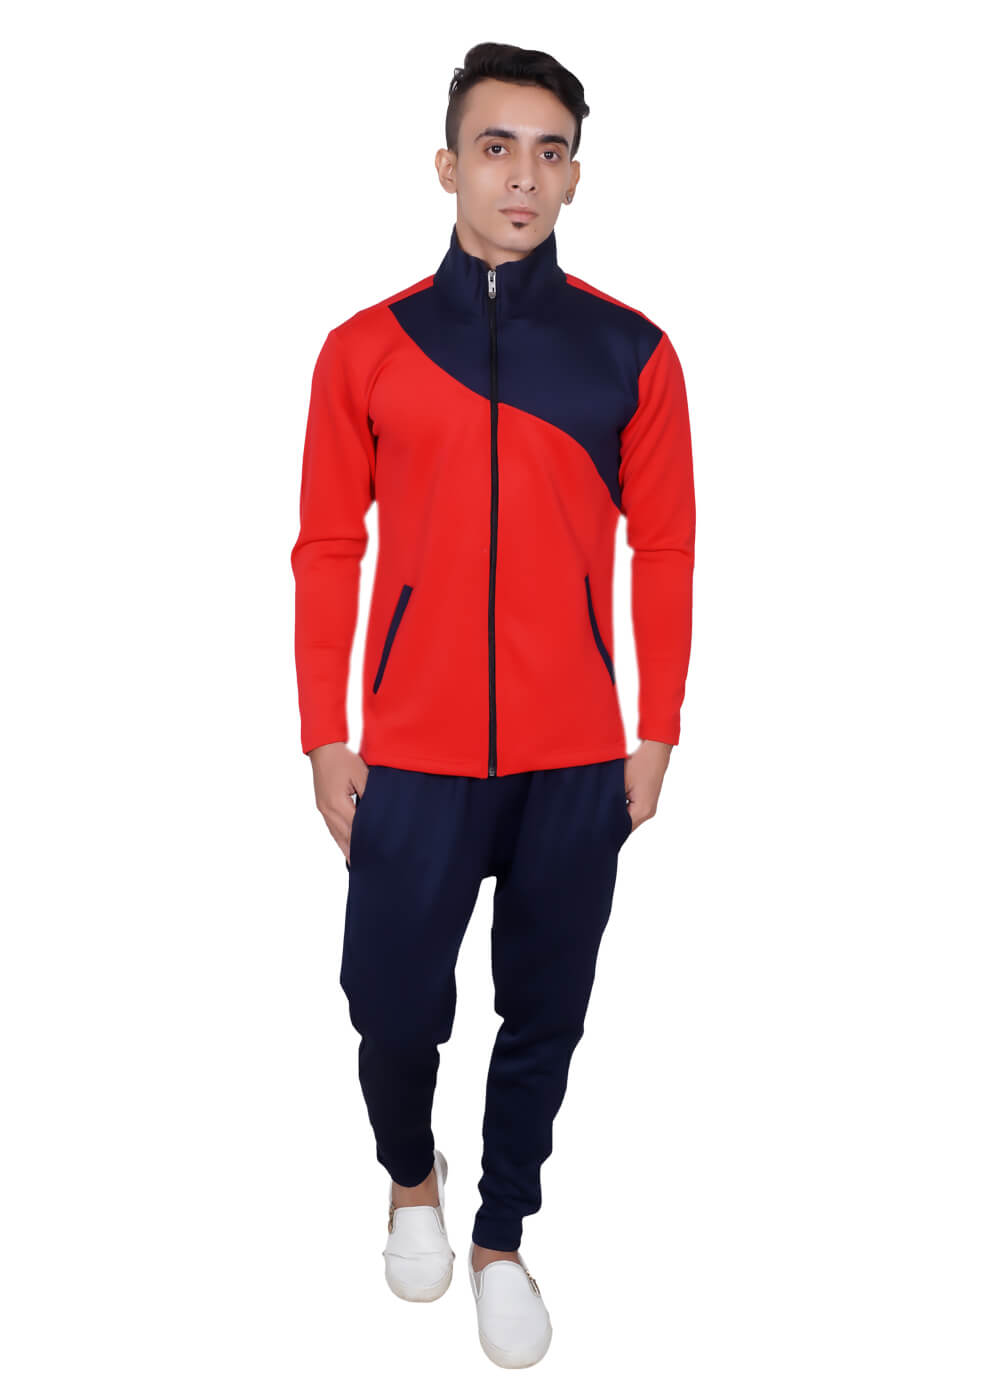 Cheap Tracksuits Manufacturers in Tiruppur